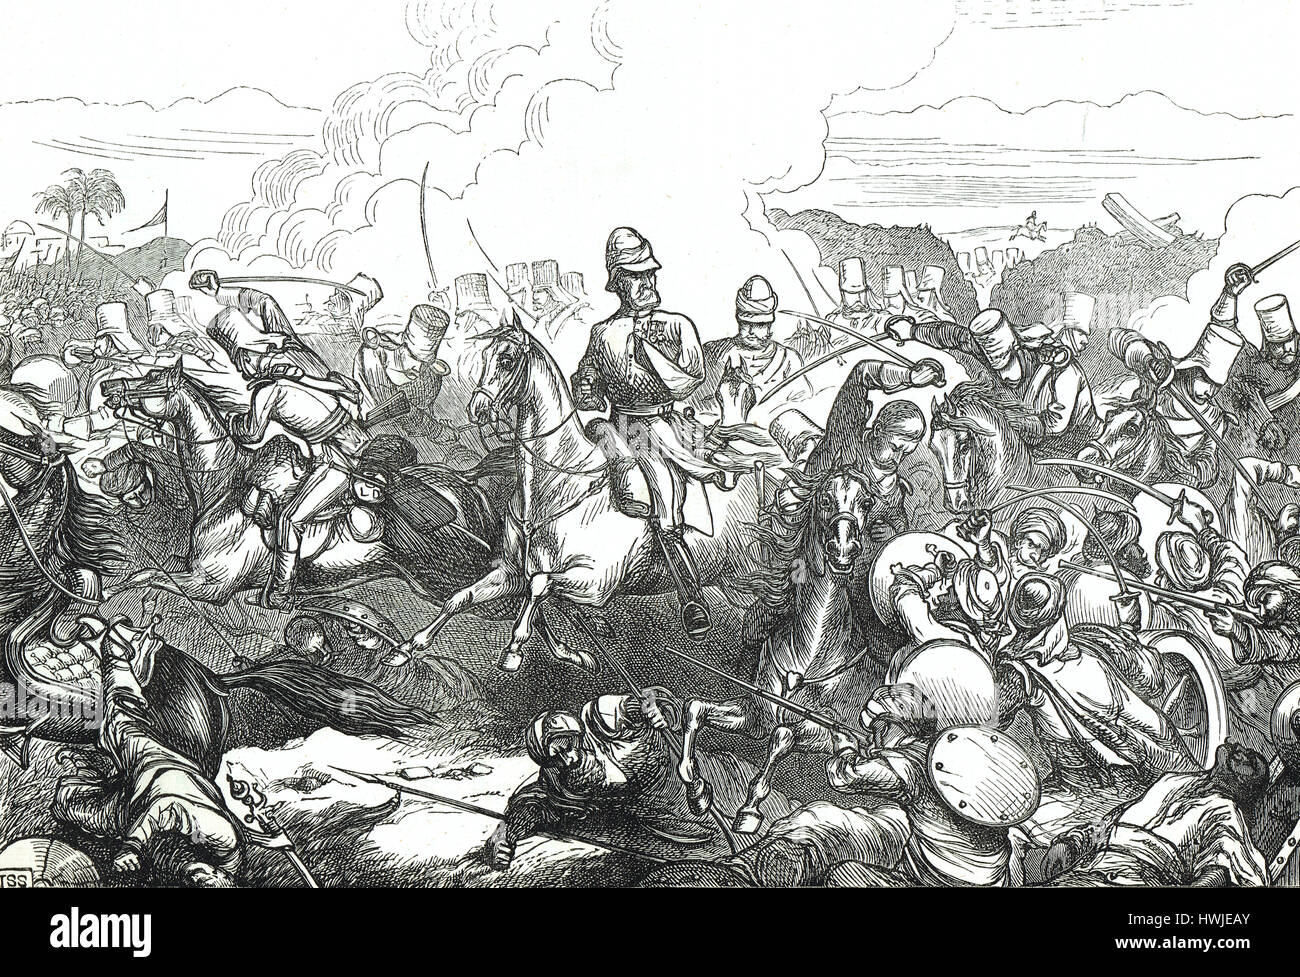 Sir Joseph Thackwell at the Battle of Sobraon 1846 in the First Anglo-Sikh War - Stock Image